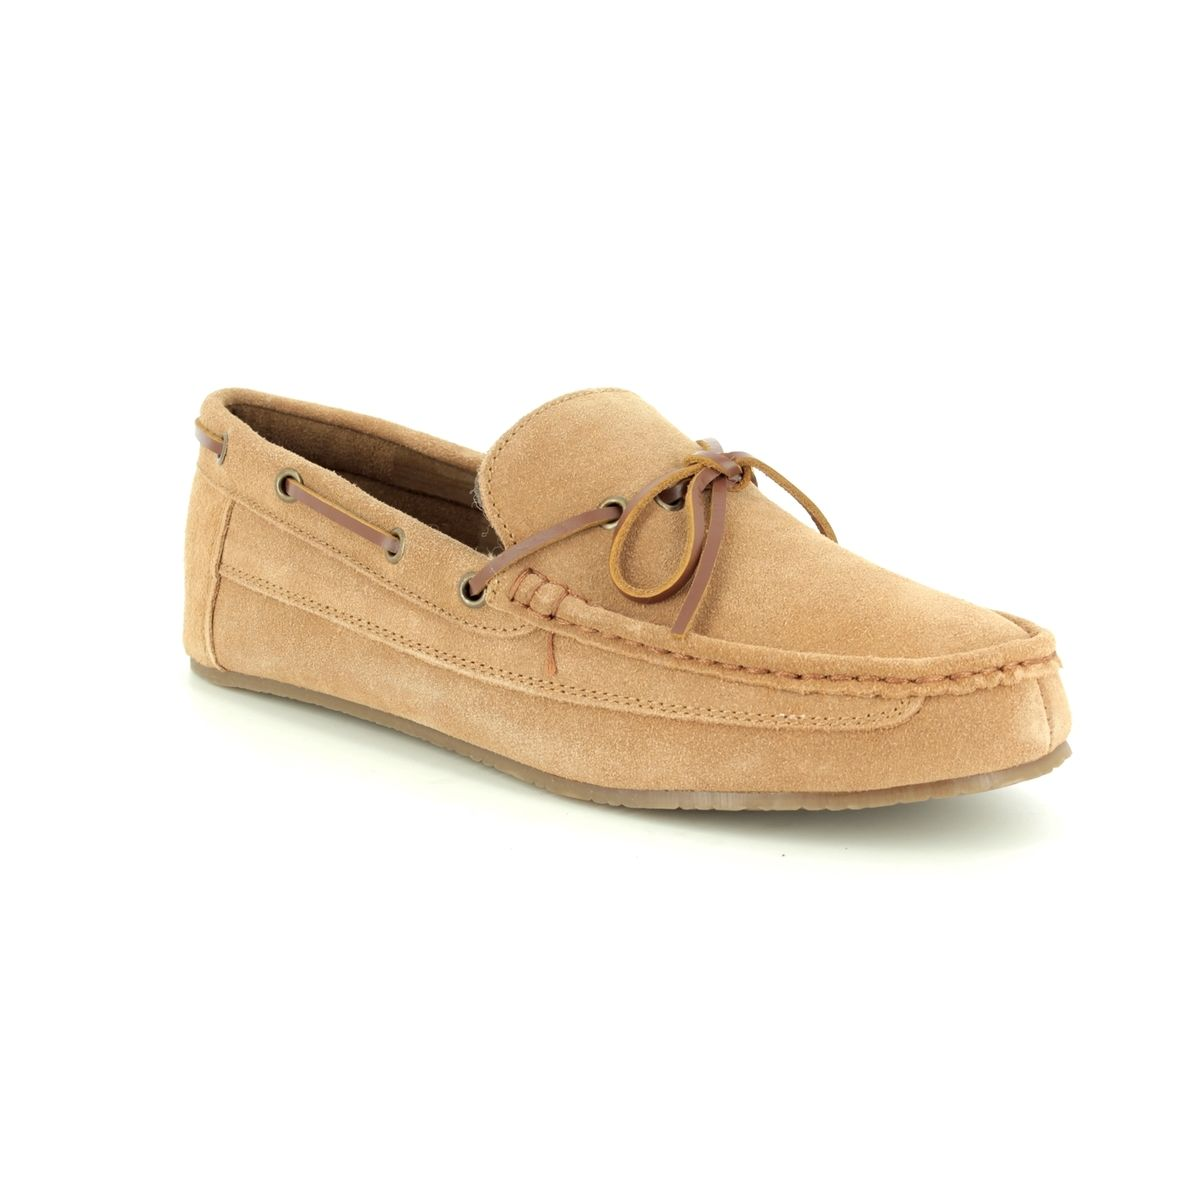 730f1164c07 Clarks Slippers - Tan suede - 3086 57G CRACKLING GLOW